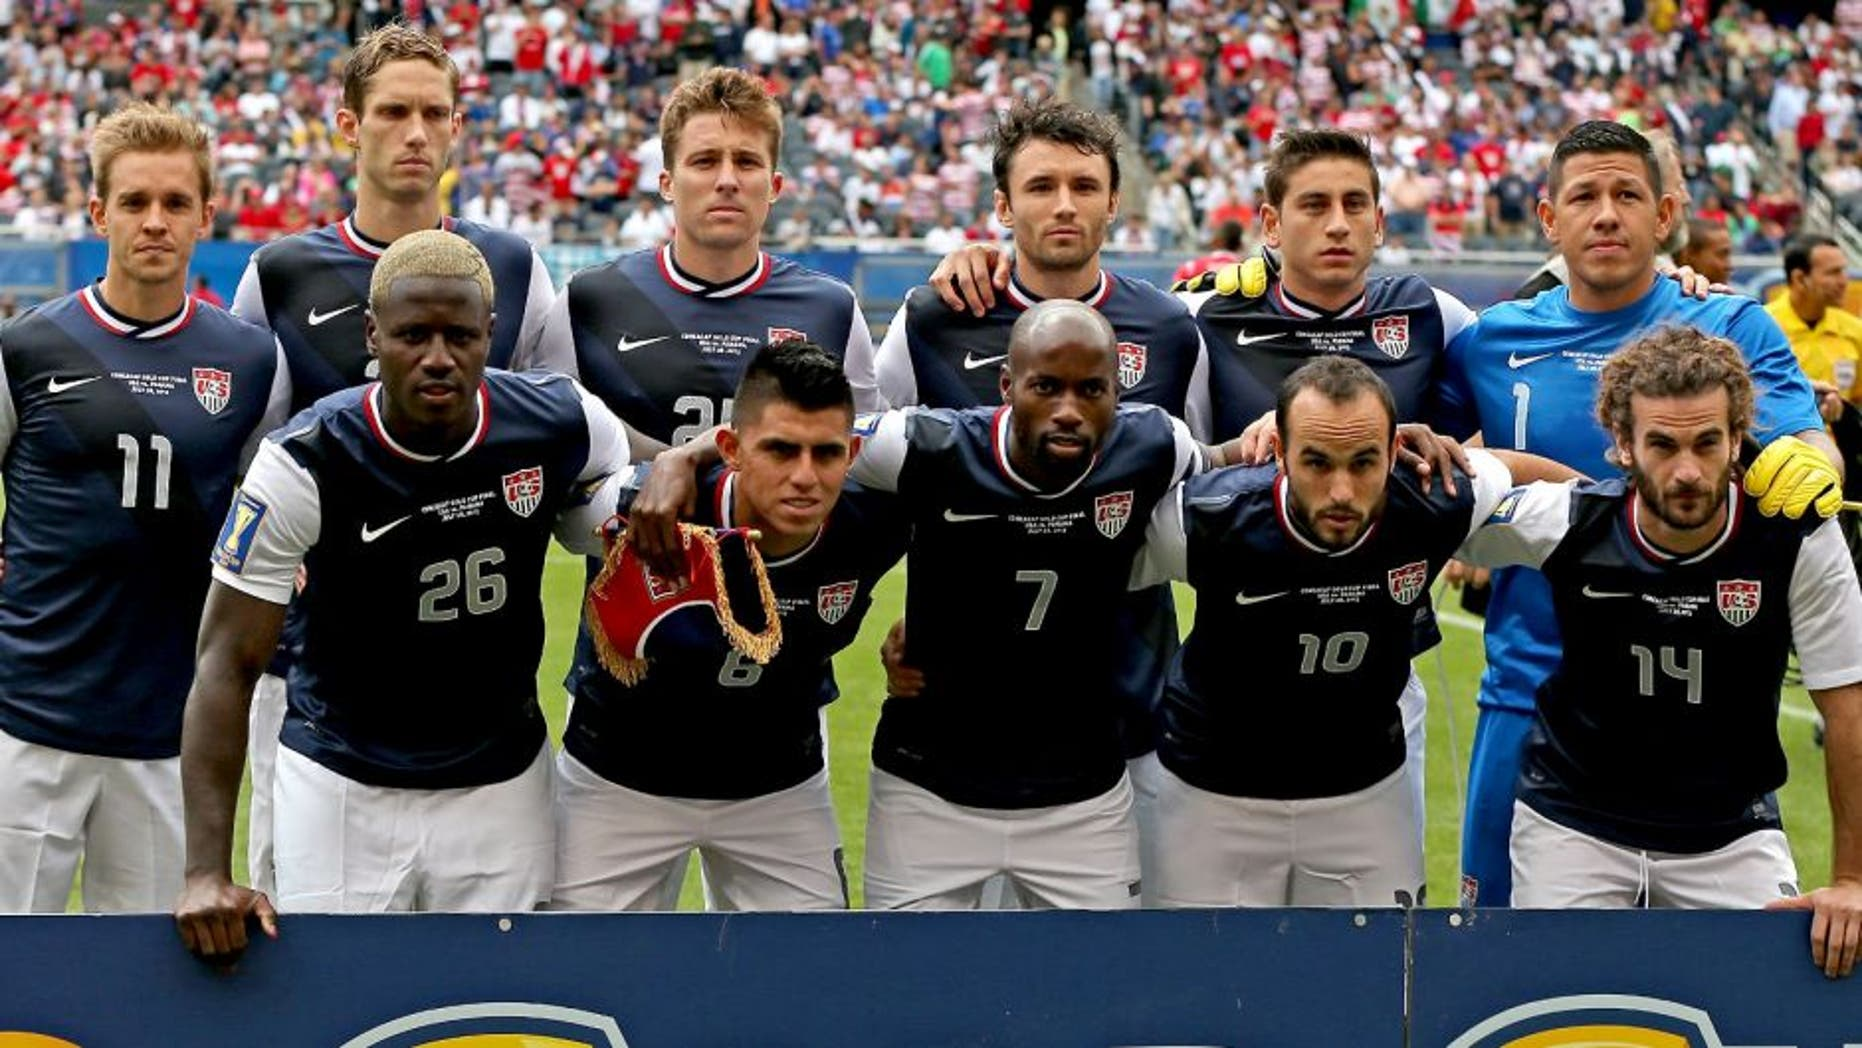 CHICAGO, IL - JULY 28: (Front L-R) Eddie Johnson #26, Joe Cornoa #6, DeMarcus Beasley #7, Landon Donovan #10 and Kyle Beckerman #14 (Back L-R) Stuart Holden #11, Clarence Goodson #21, Matt Besler #25, Michael Parkhurst #15, Alejandro Bedoya and Nick Rimando #1 of the United States pose before the CONCACAF Gold Cup final match against Panama at Soldier Field on July 28, 2013 in Chicago, Illinois. The United States defated Panama 1-0. (Photo by Jonathan Daniel/Getty Images)